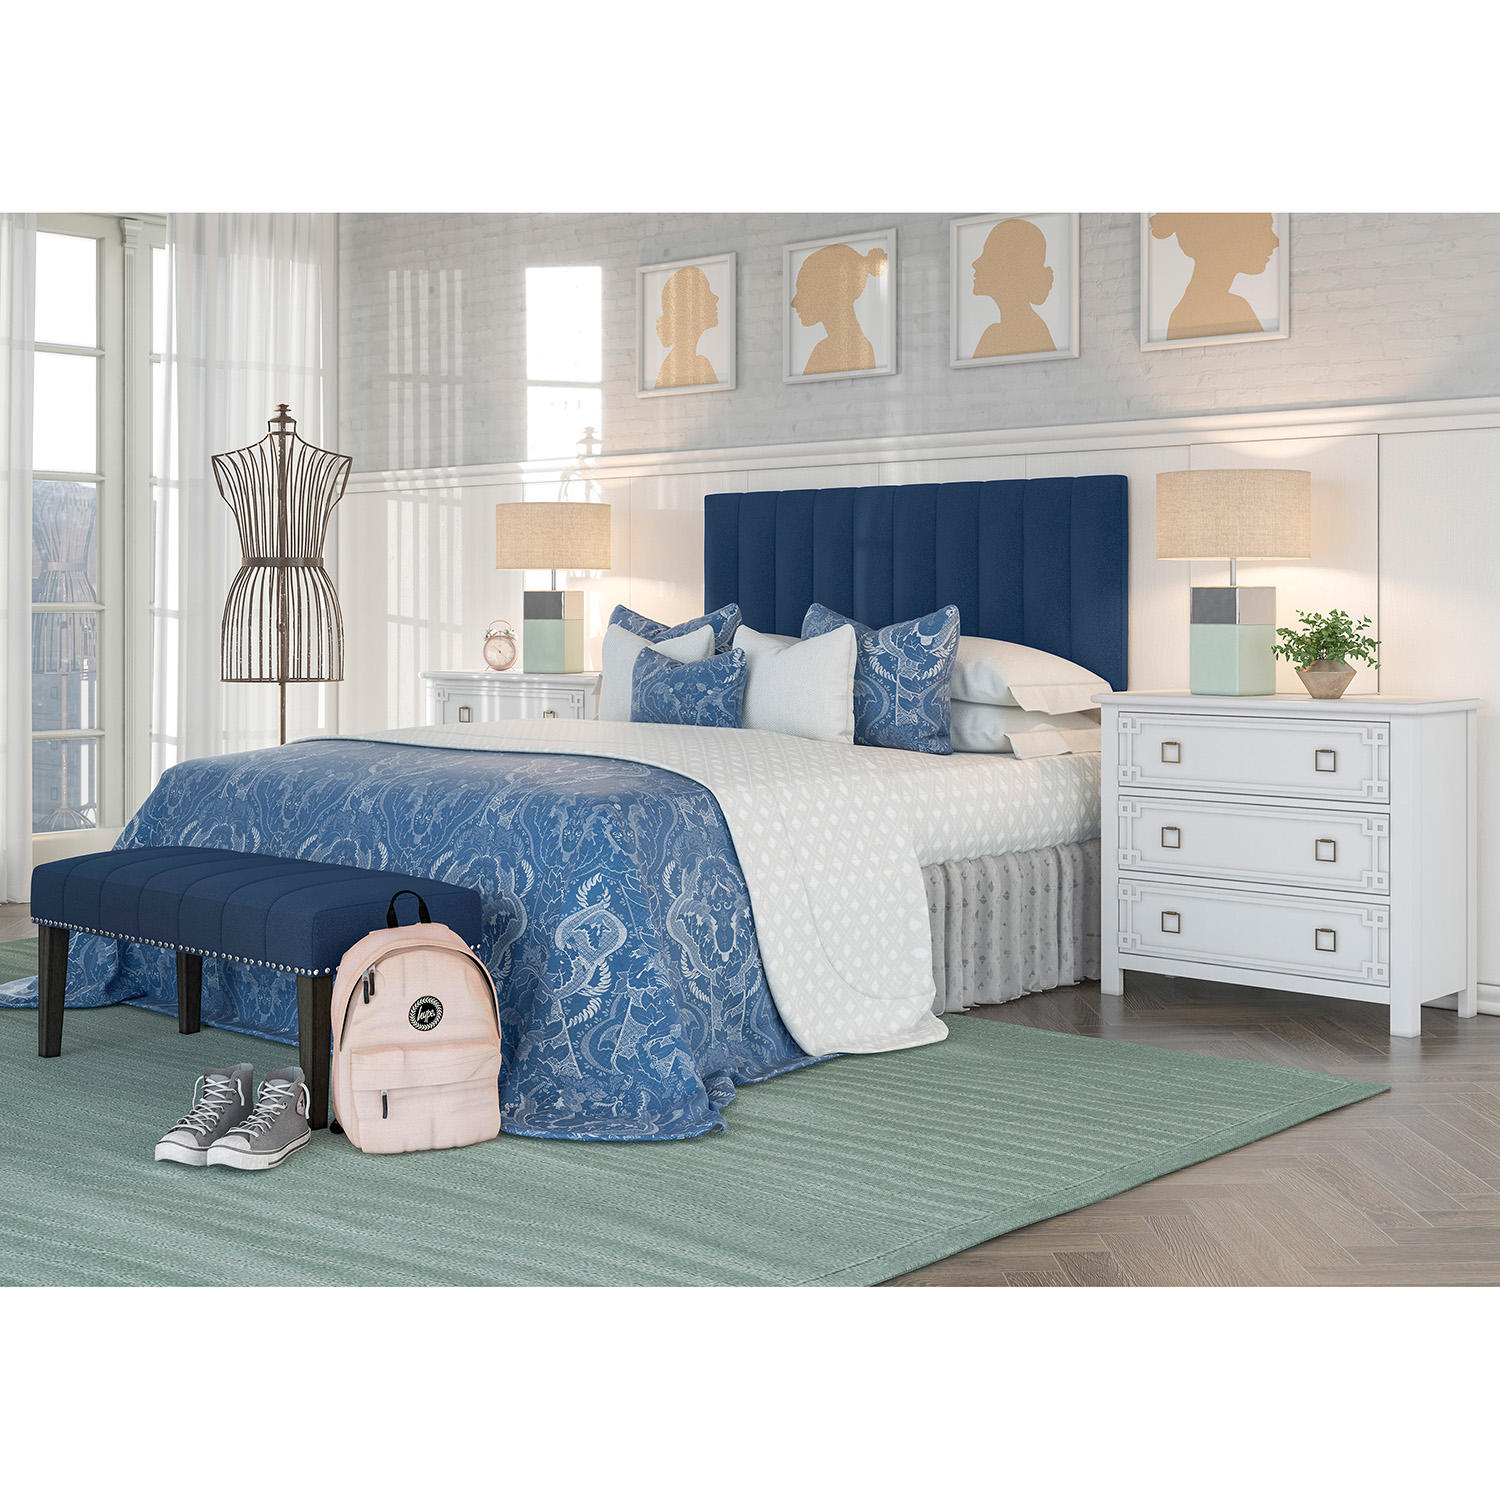 Home Meridian Upholstered Full/Queen Headboard and Bench Set (Assorted Colors)